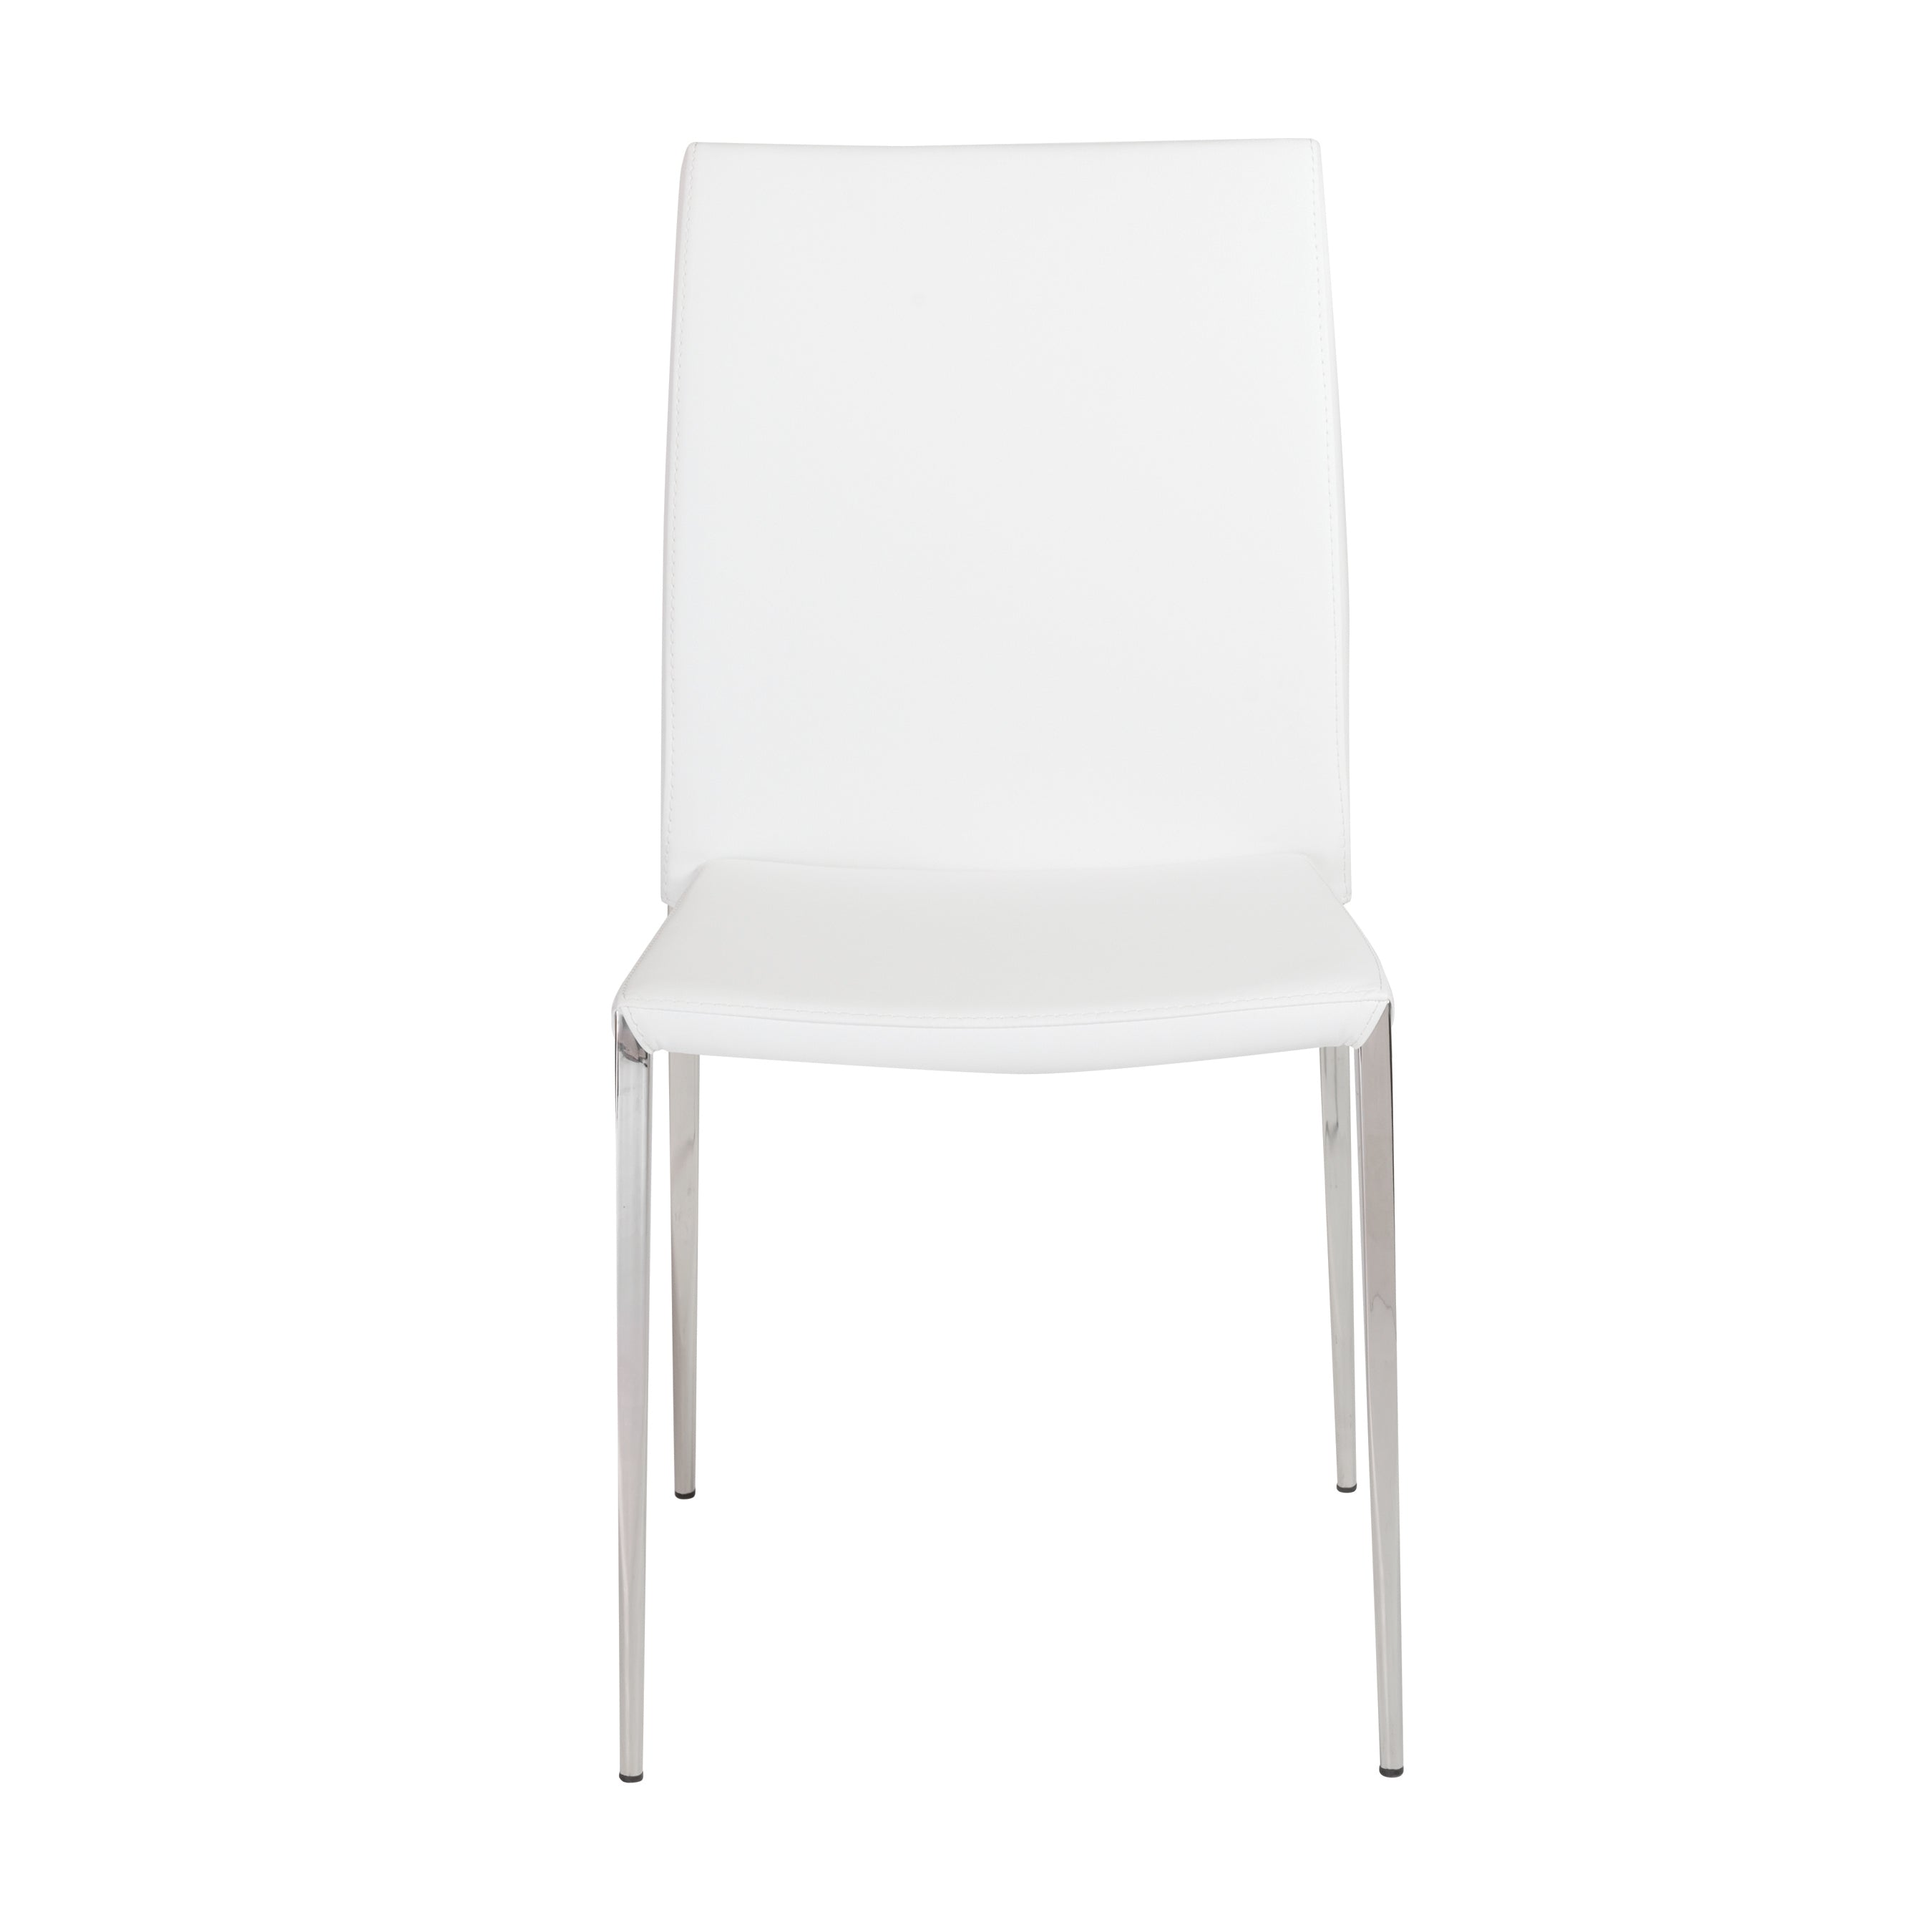 Classic Stackable White Guest or Conference Chair (Set of 4)